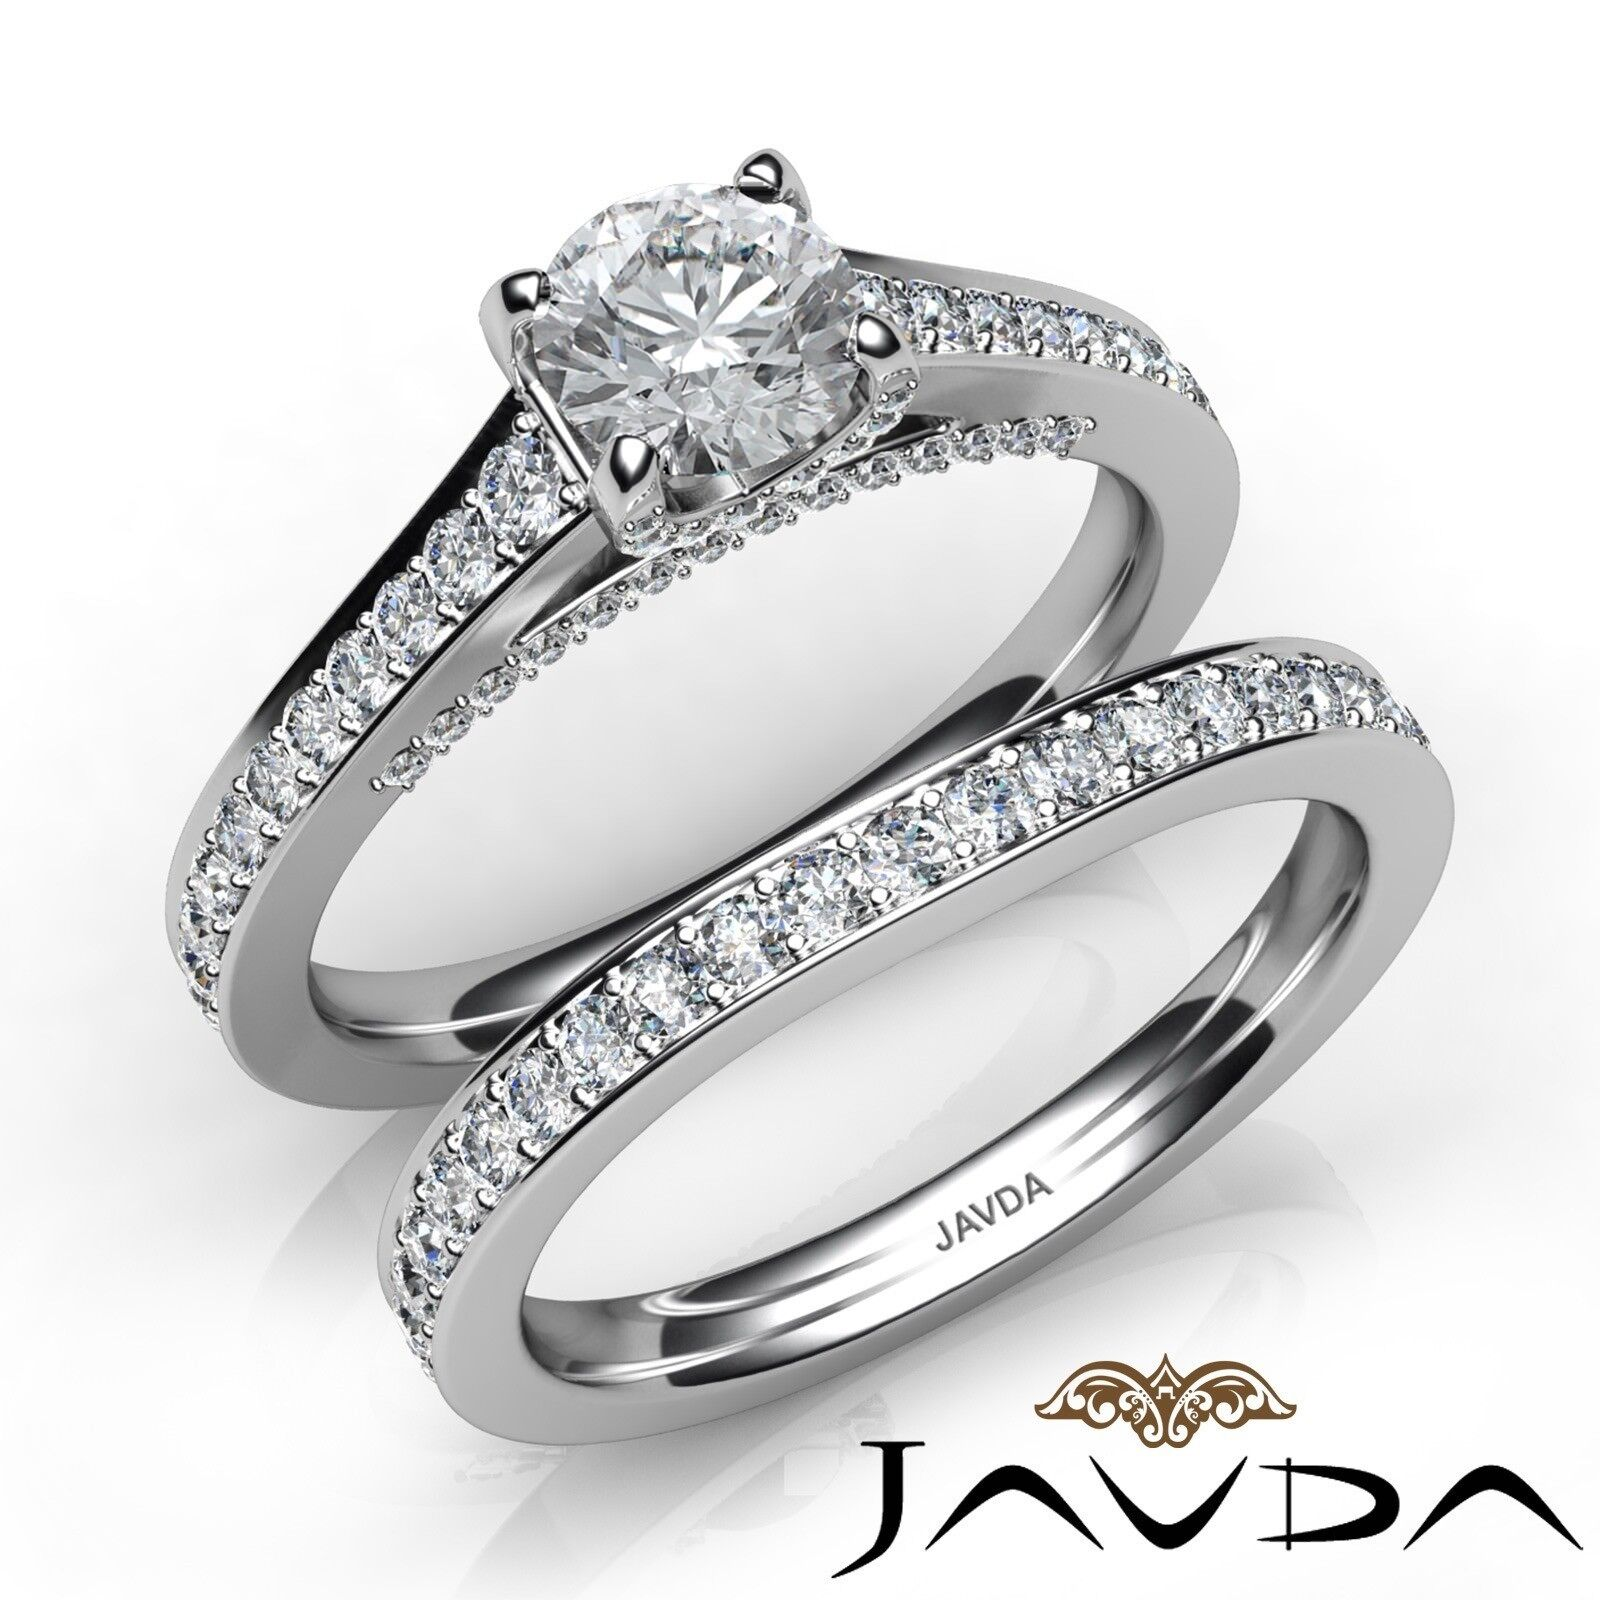 1.65ctw Pave Classic Bridal Set Round Diamond Engagement Ring GIA F-VVS2 W Gold